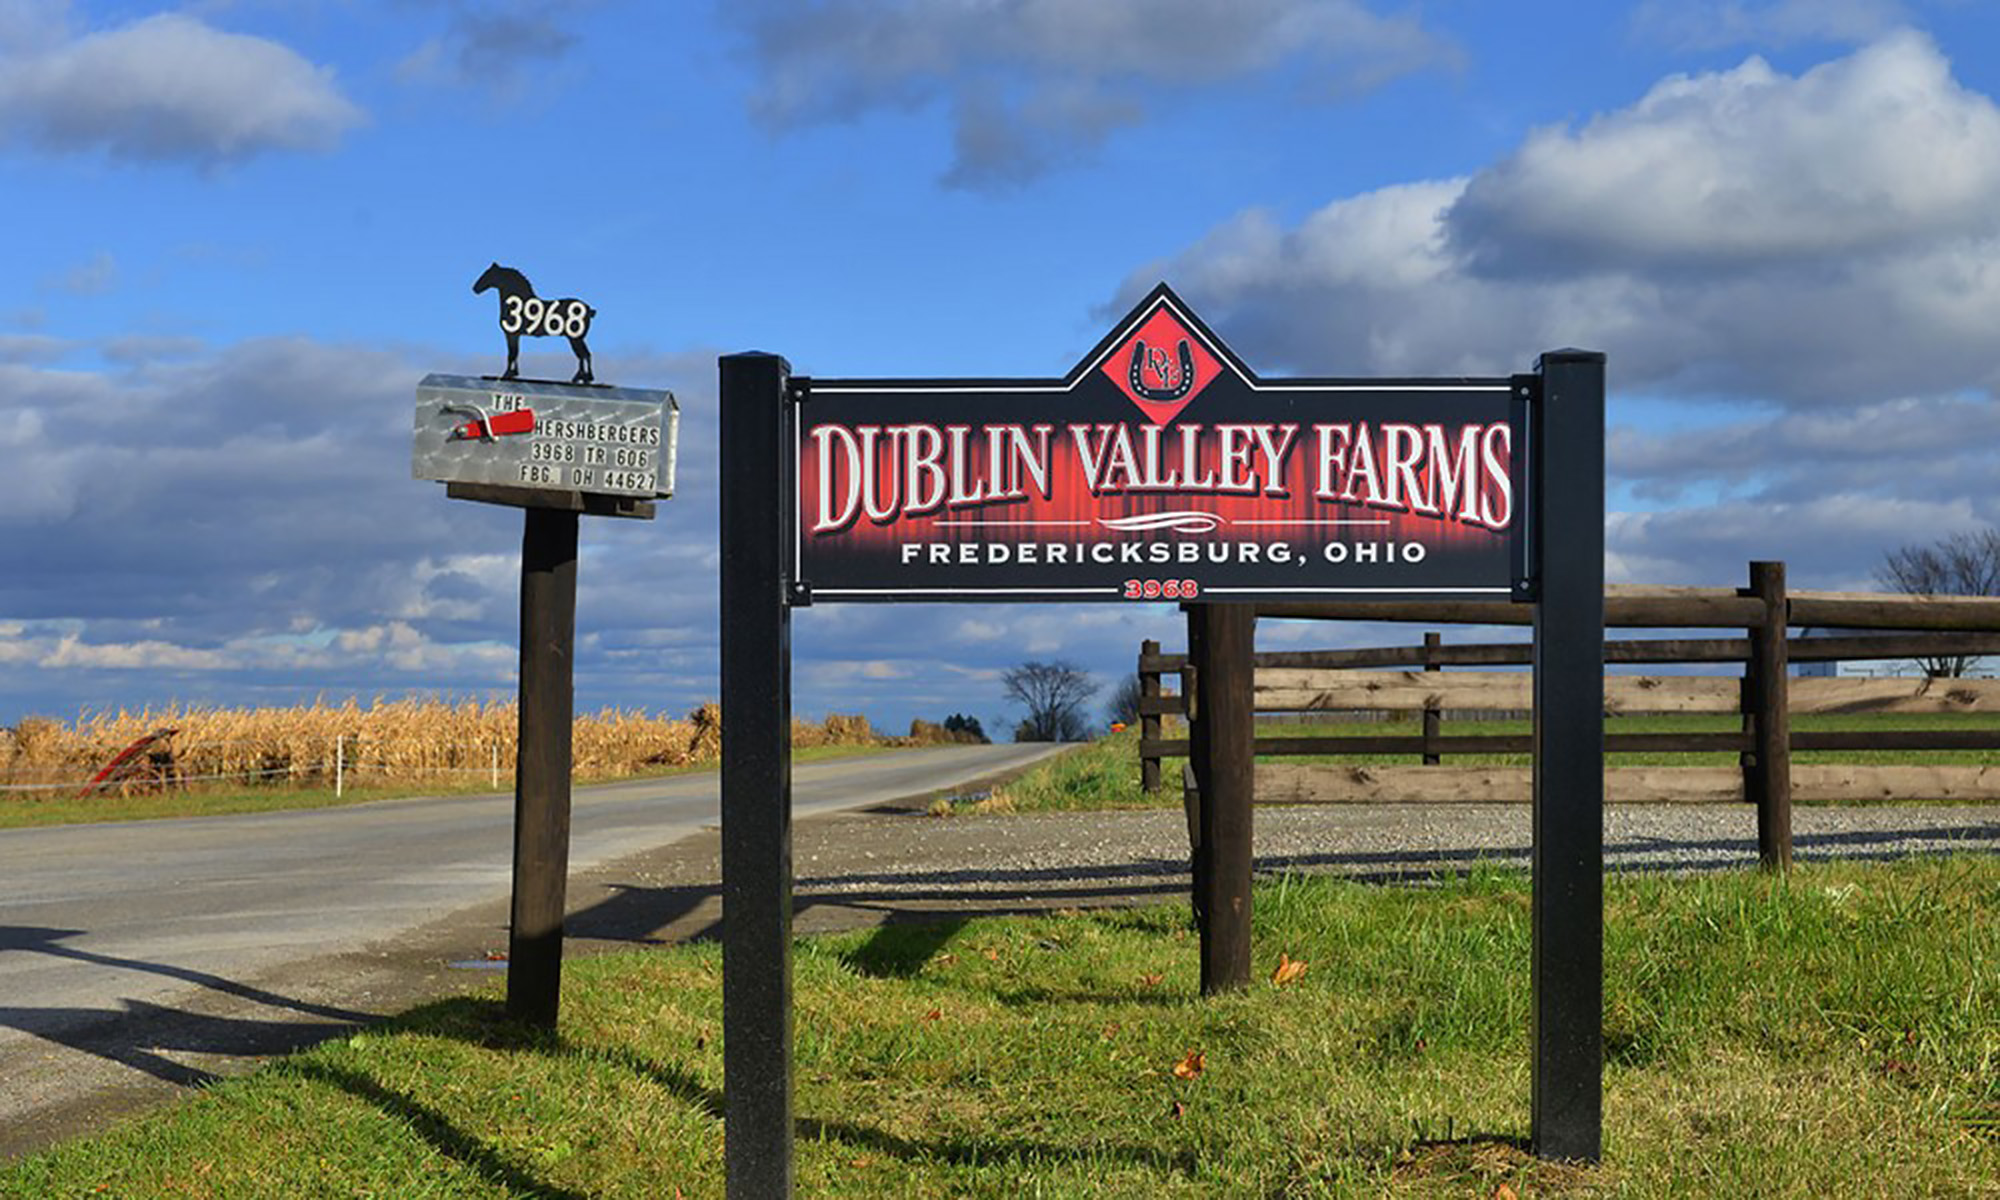 Dublin Valley Farms